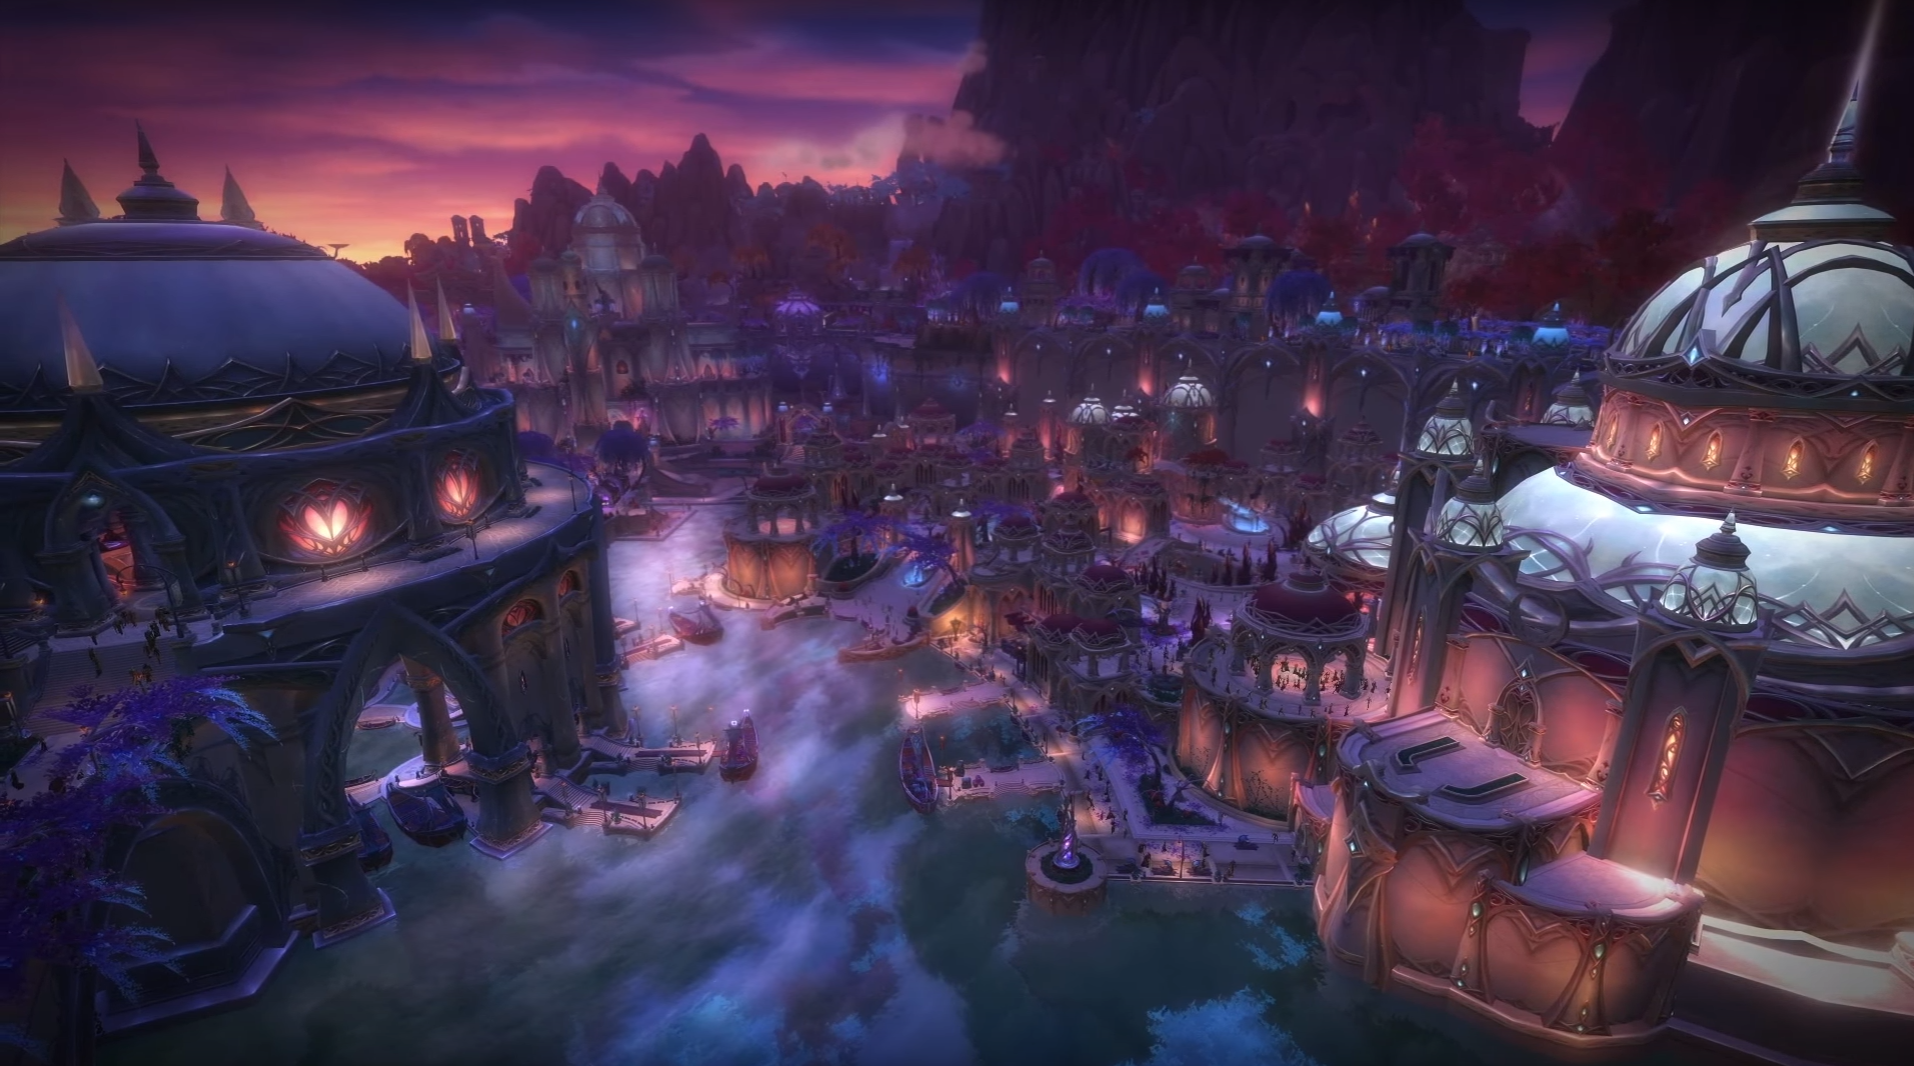 Suramar - Nightlore Lore